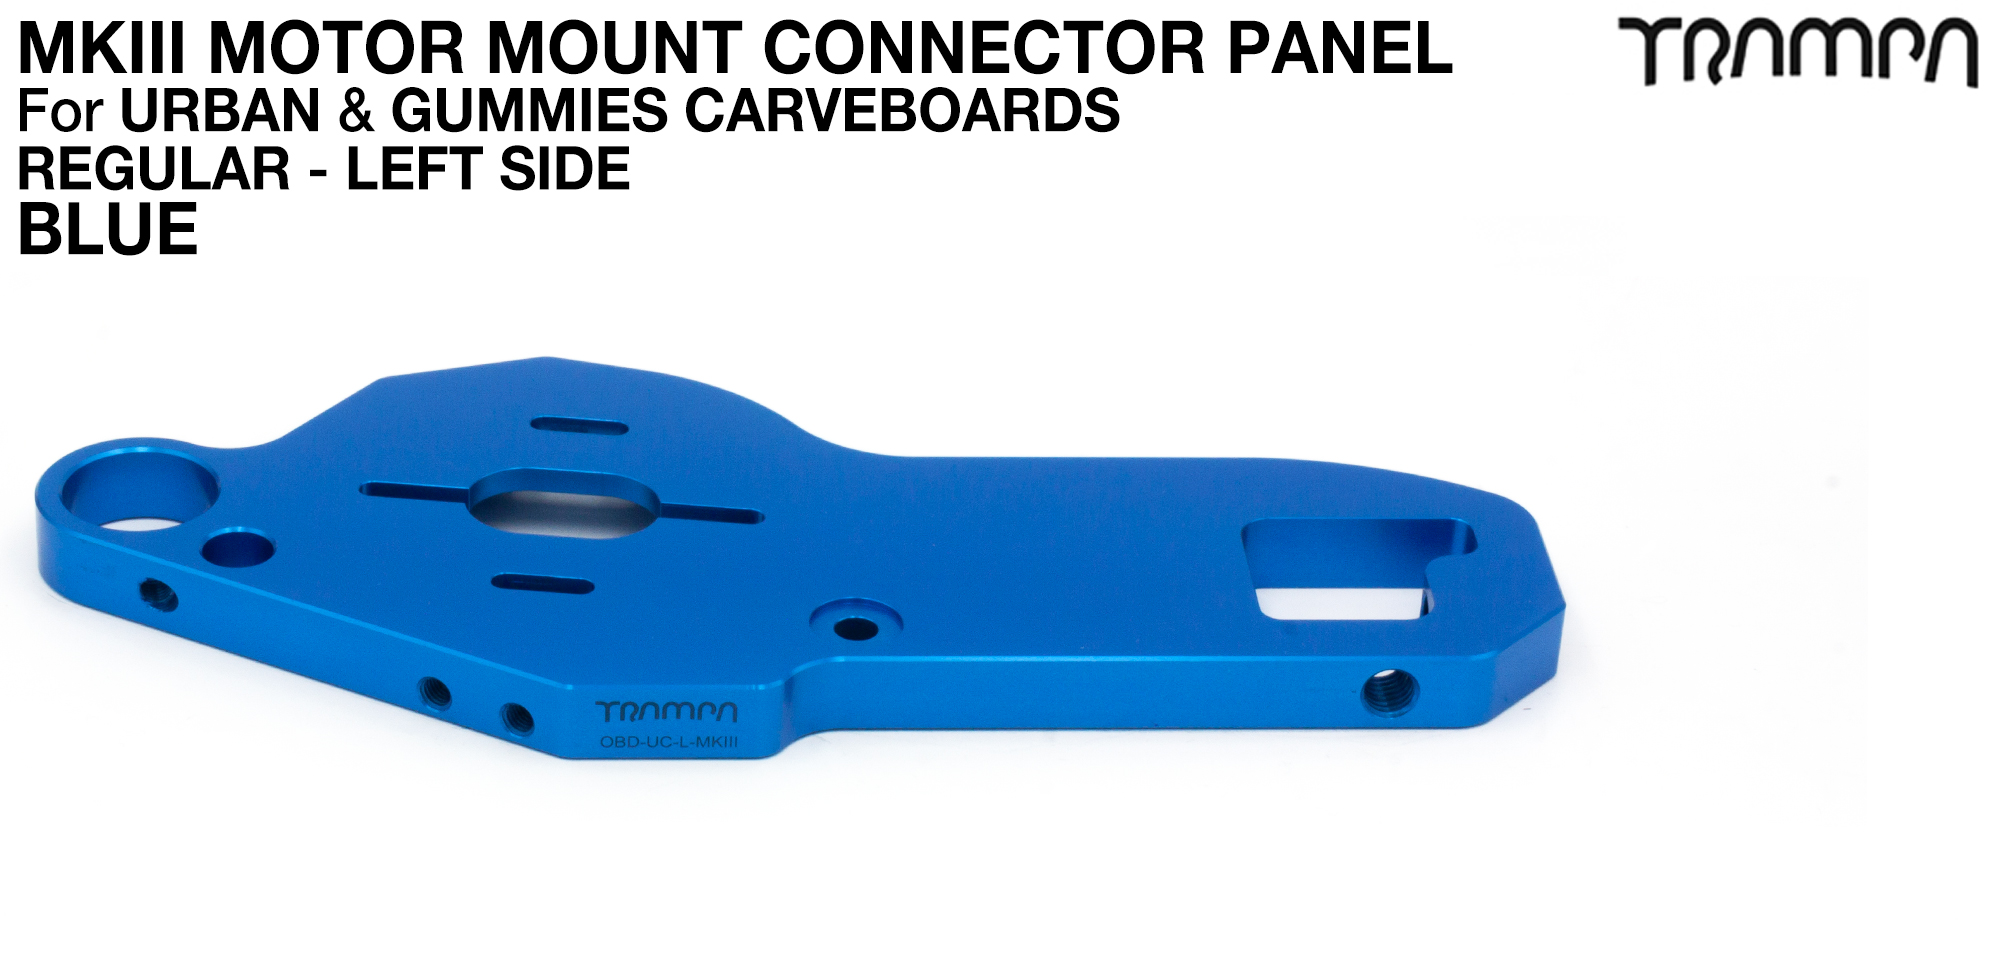 URBAN CARVE Motor Mount - REGULAR BLUE - OUT OF STOCK